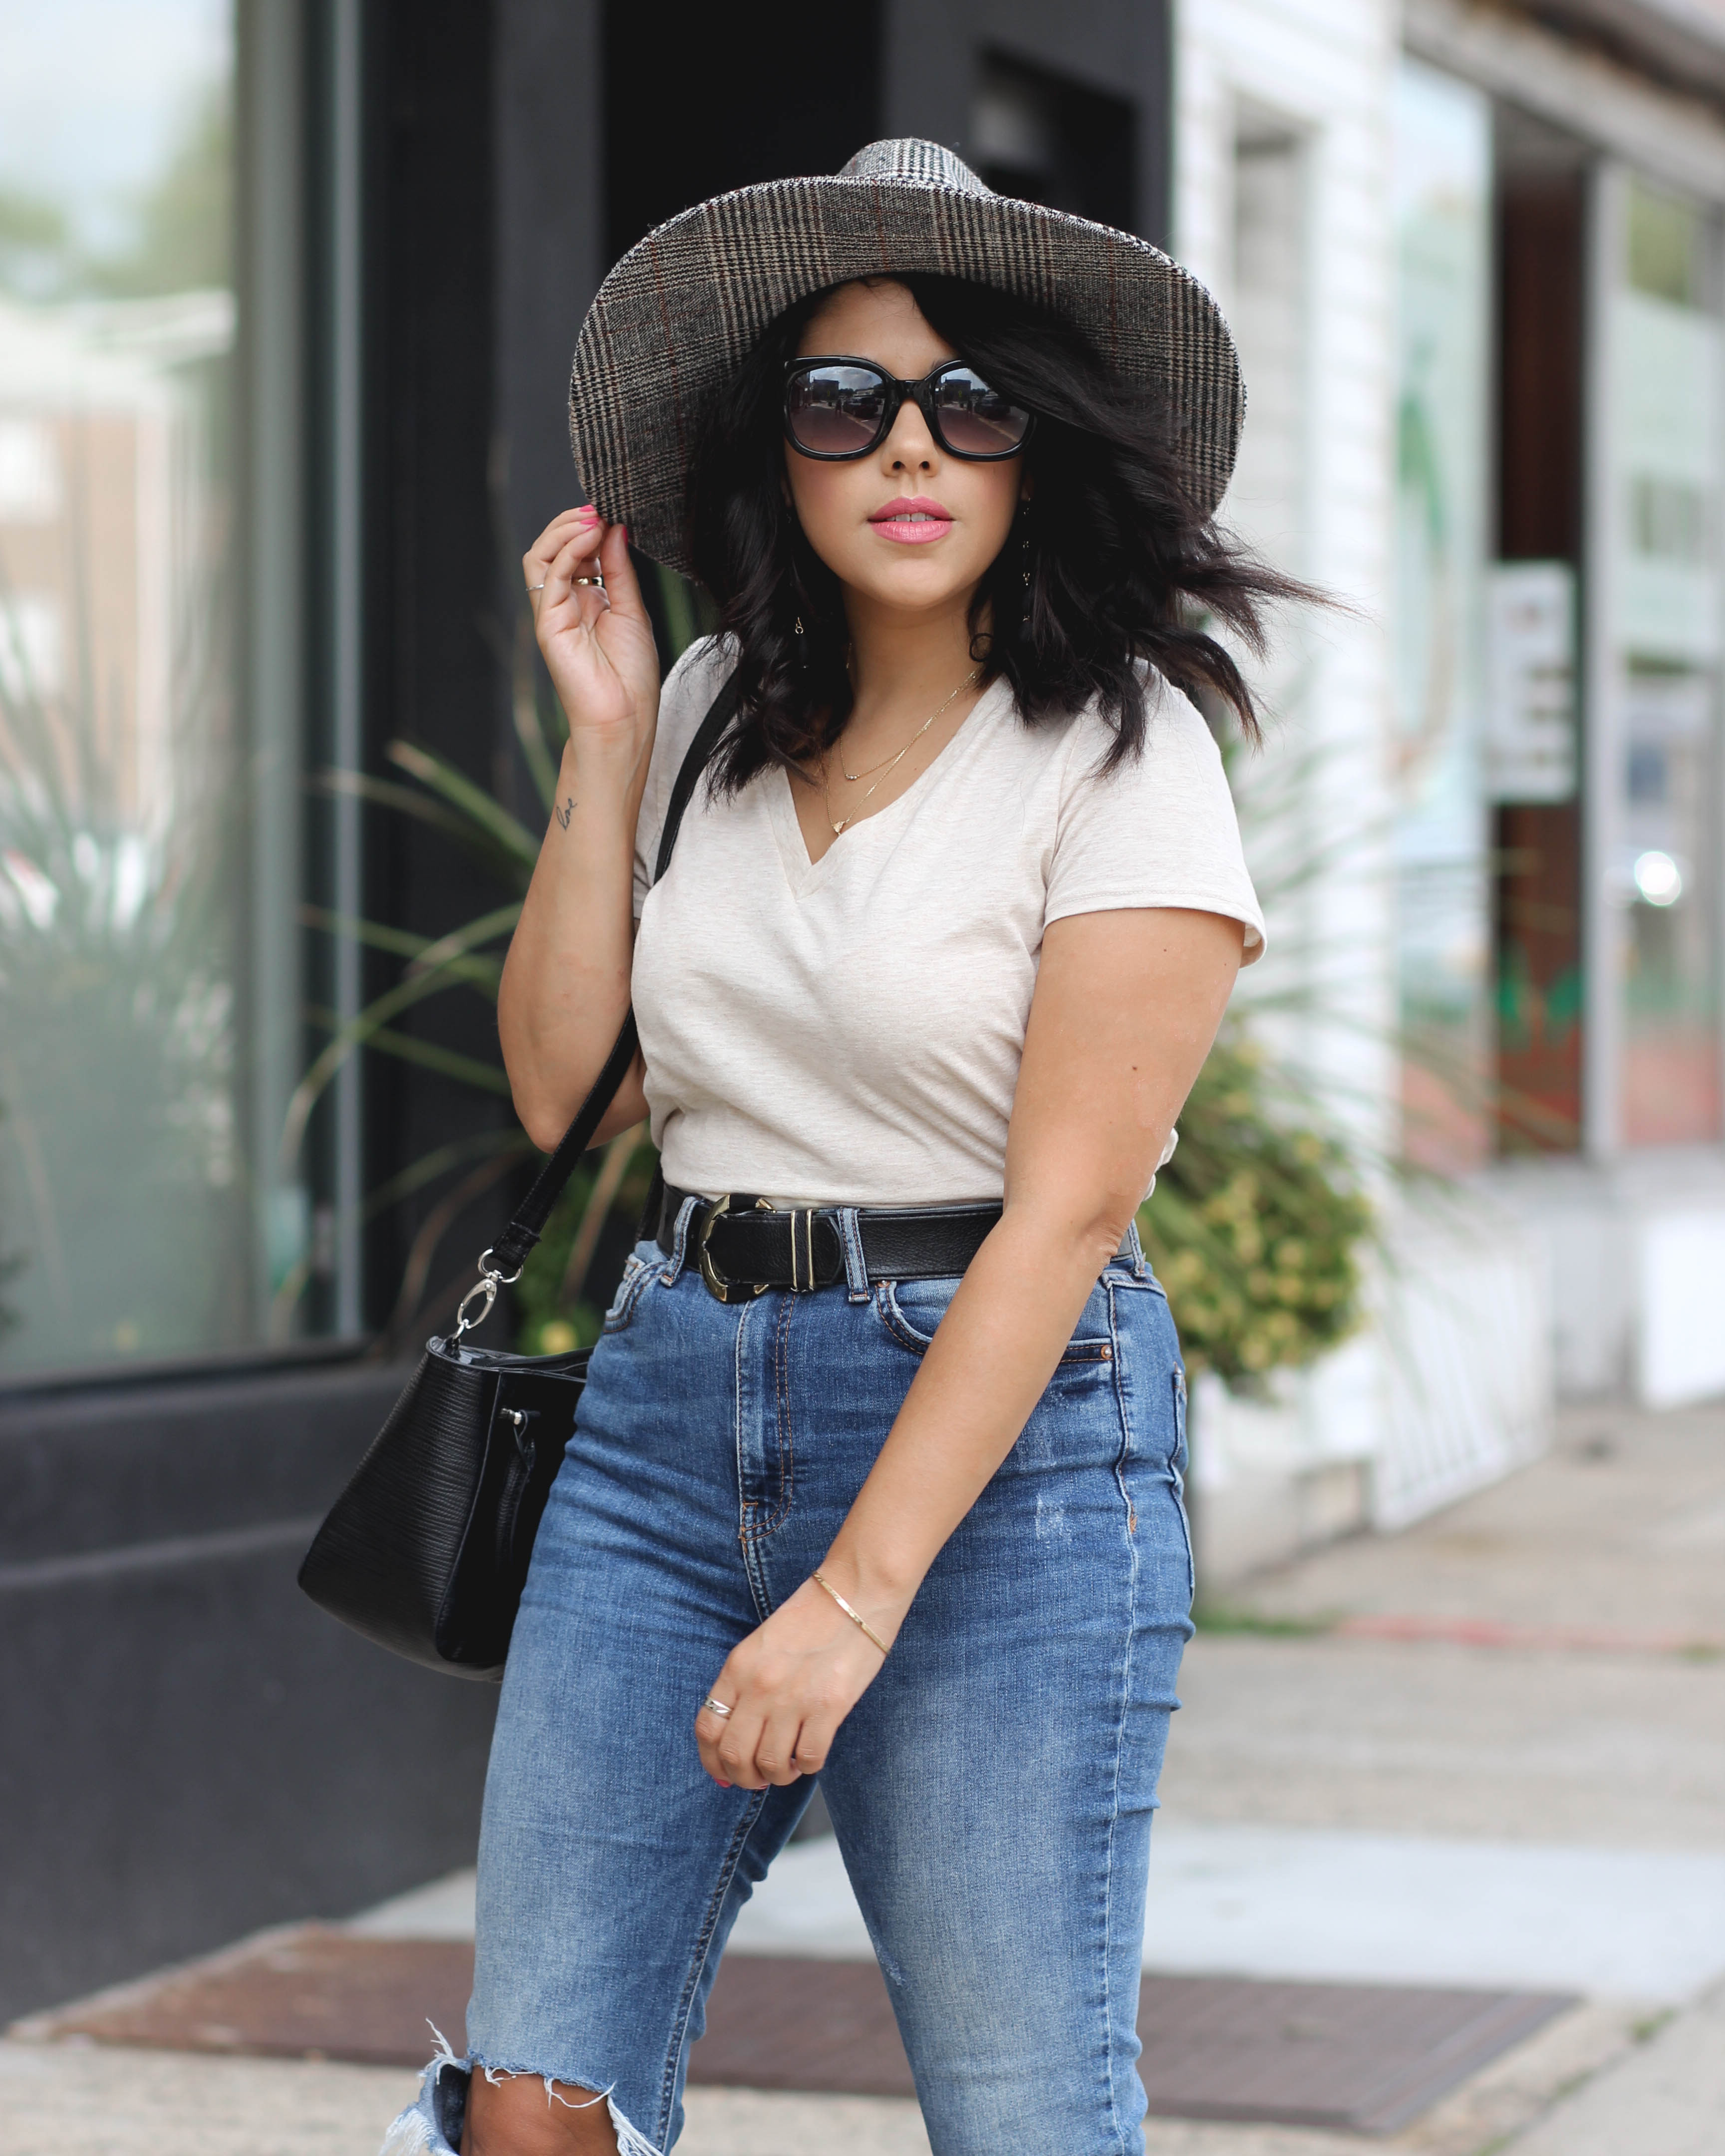 lifestyle blogger naty michele wearing wide brim hat walking